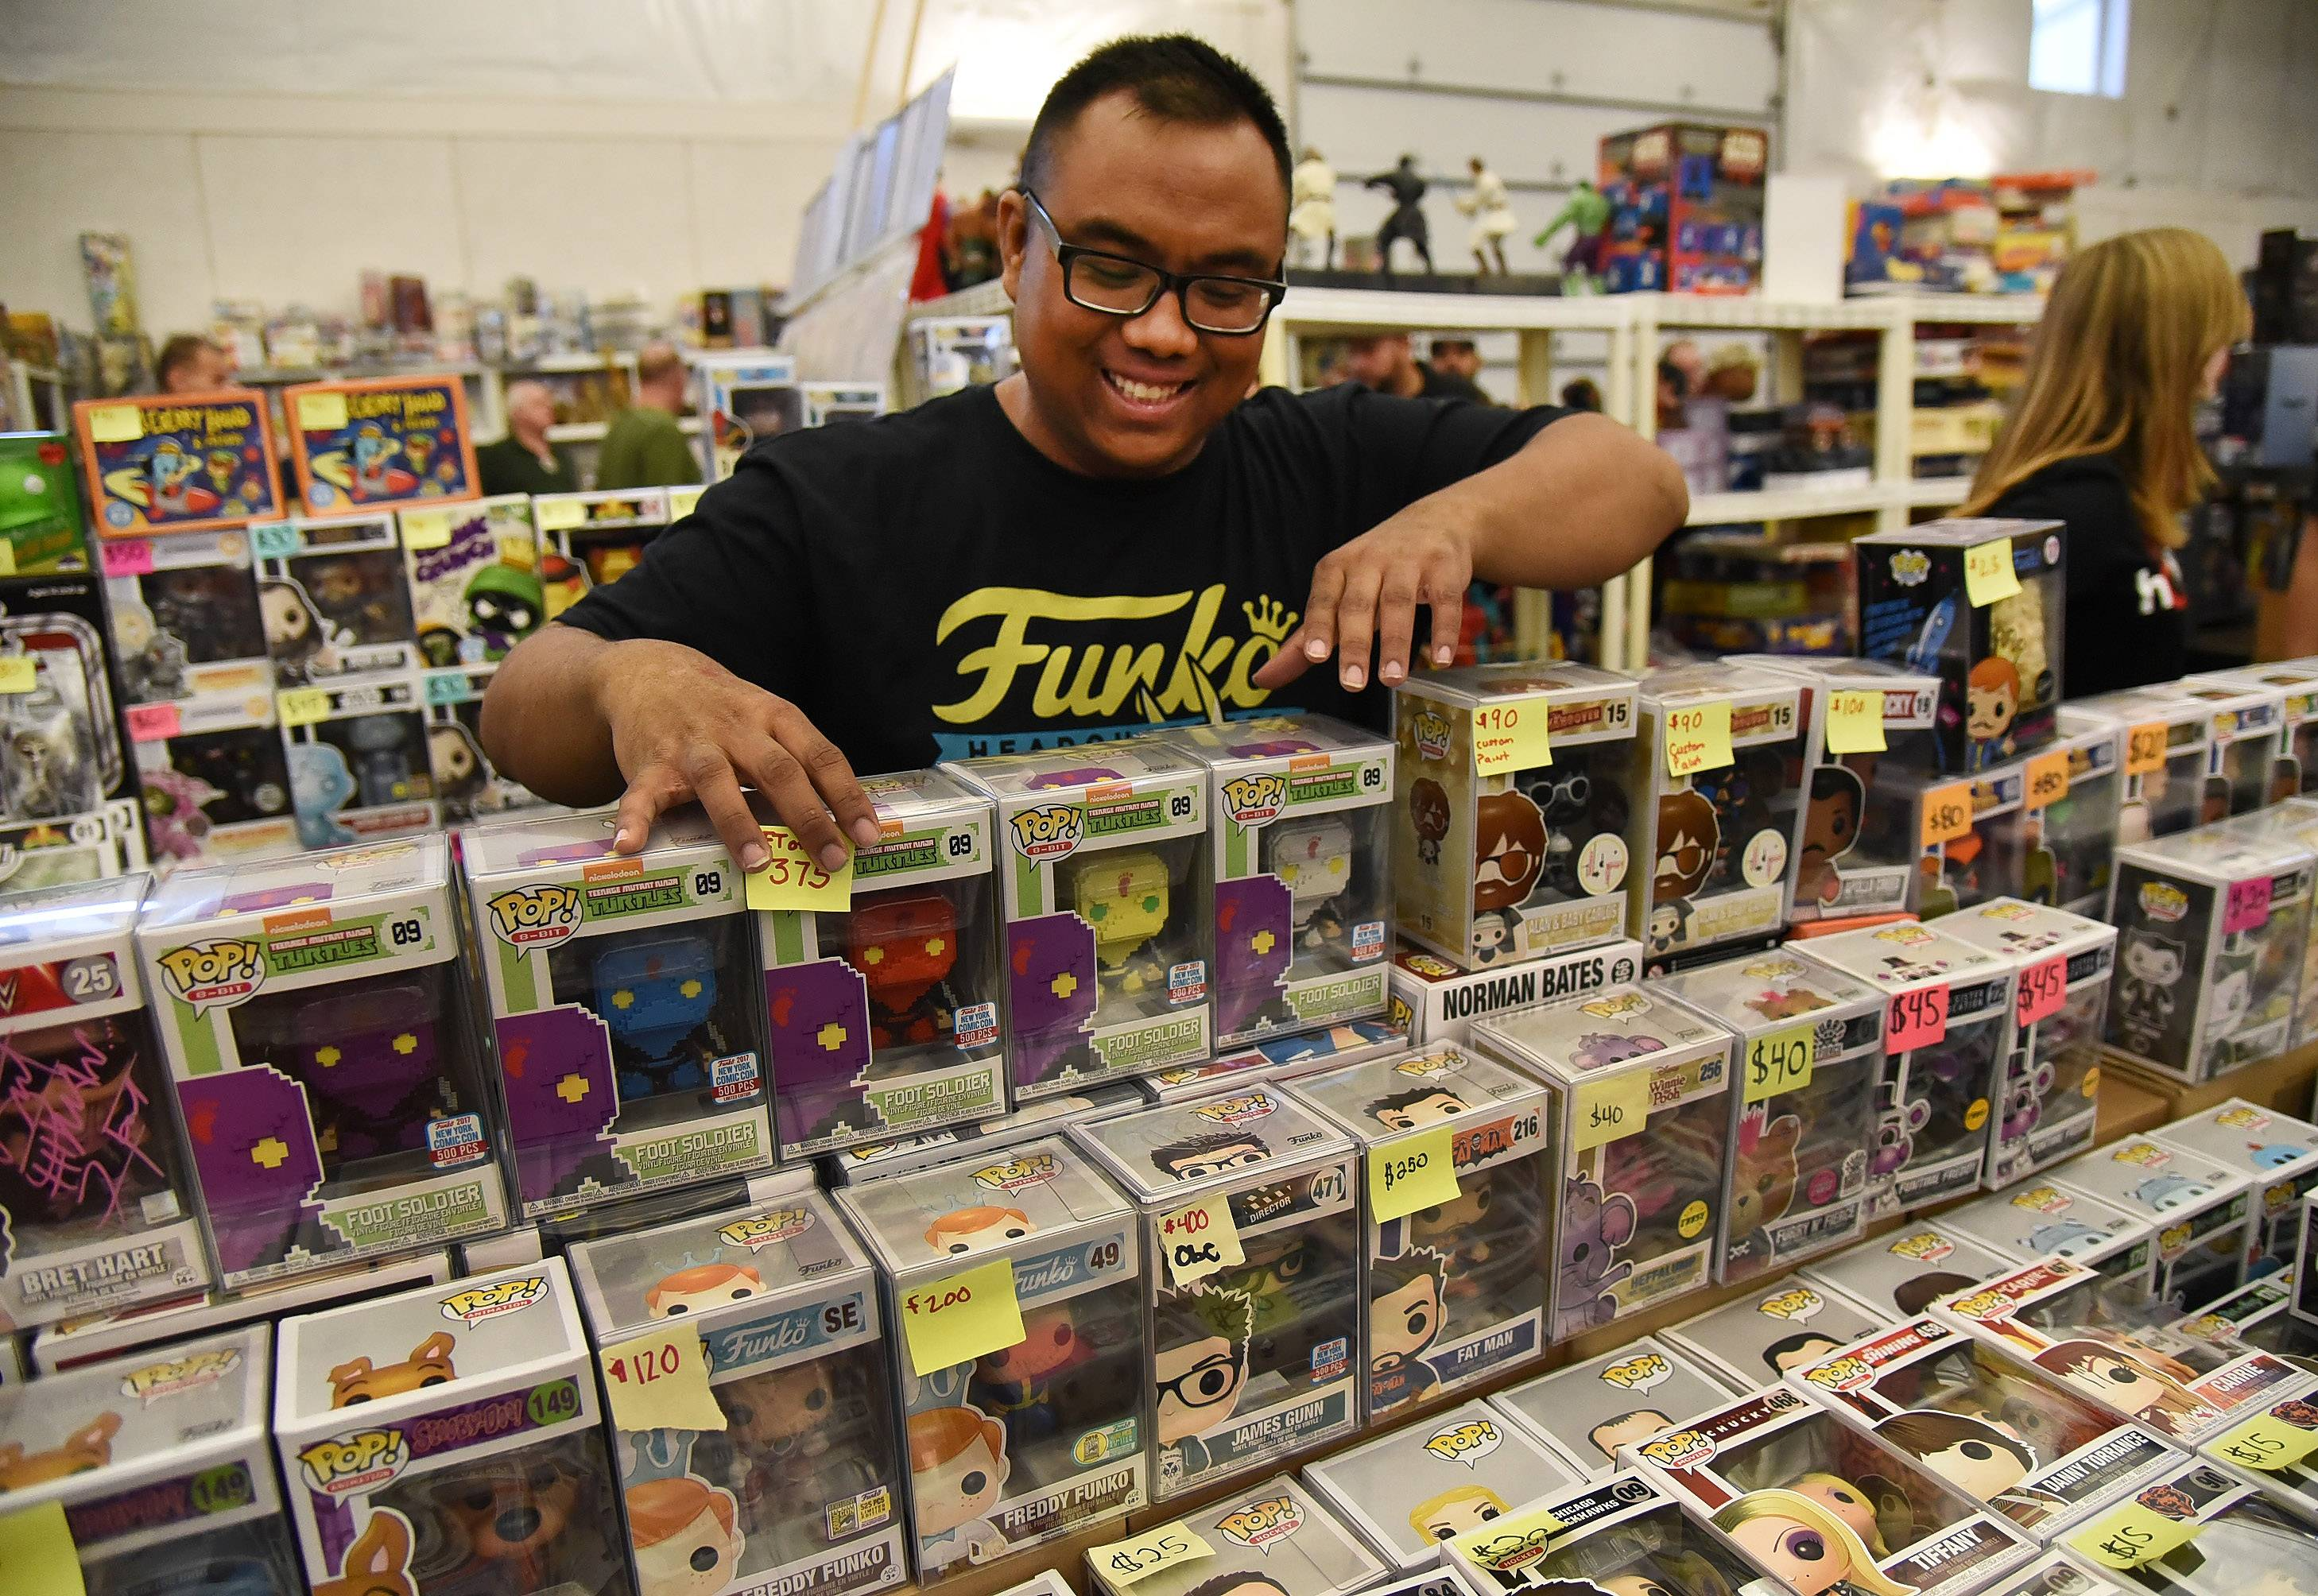 If Ninja Turtles were your thing, Ray Punzalan of Carol Stream had dozens of NY Comic Con Funko Exclusives on display Sunday at the 44th Antique Collectible Toy and Doll Show at the Kane County Fairgrounds in St. Charles.